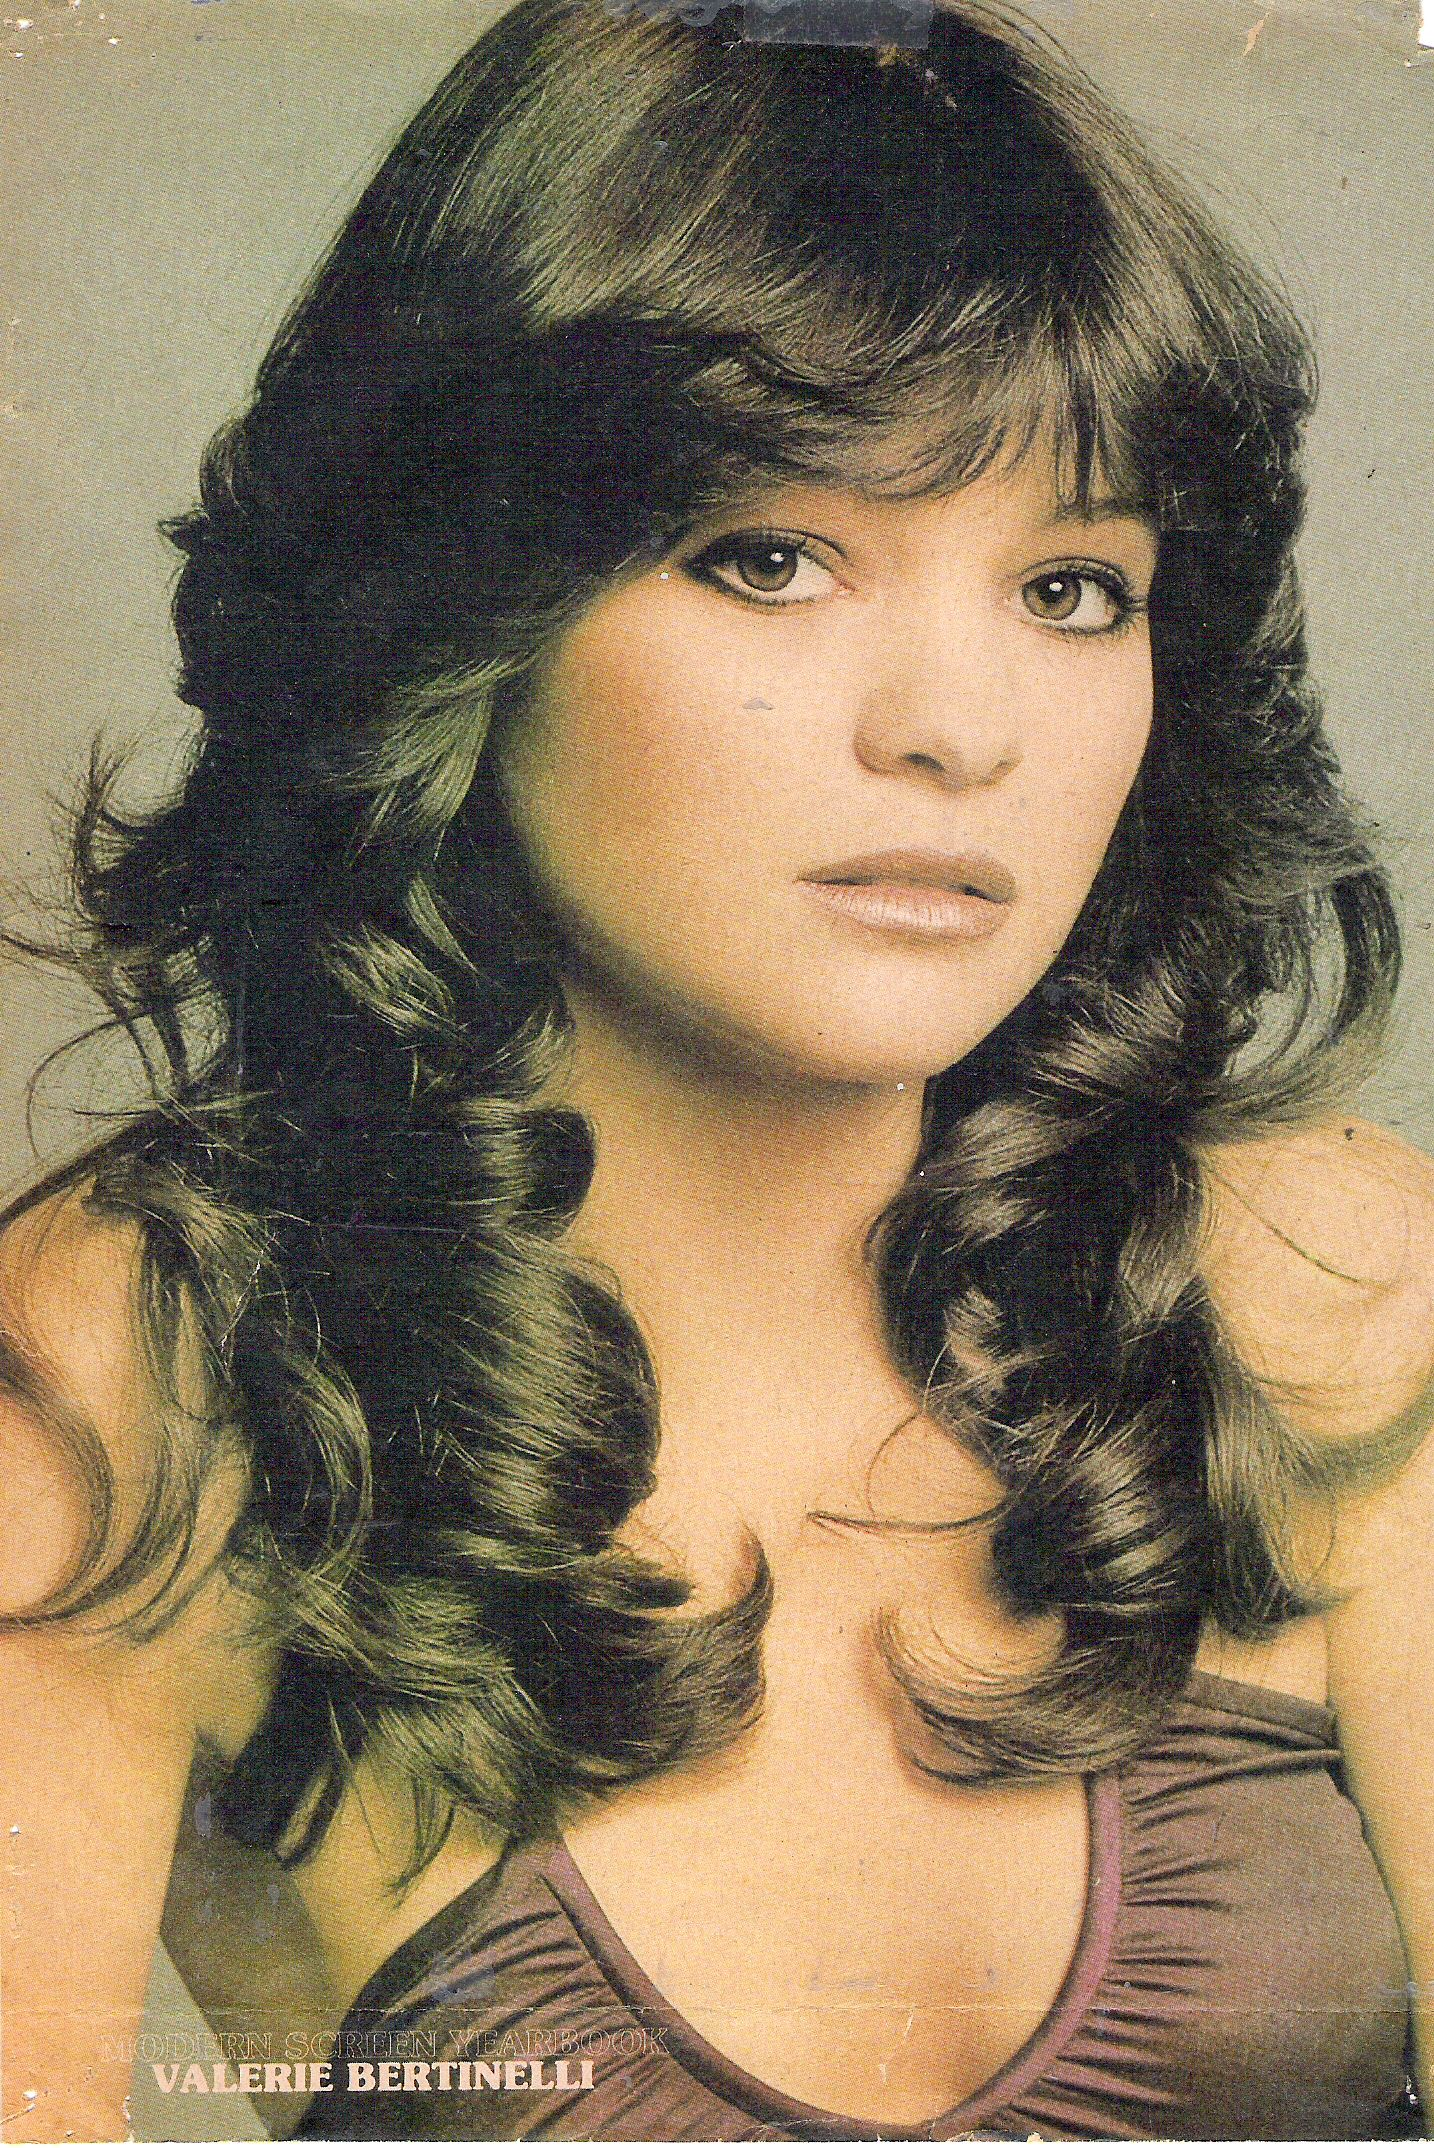 Valerie Bertinelli Of One Day At A Time 1970s Hairstyles Hair Styles Vintage Hairstyles